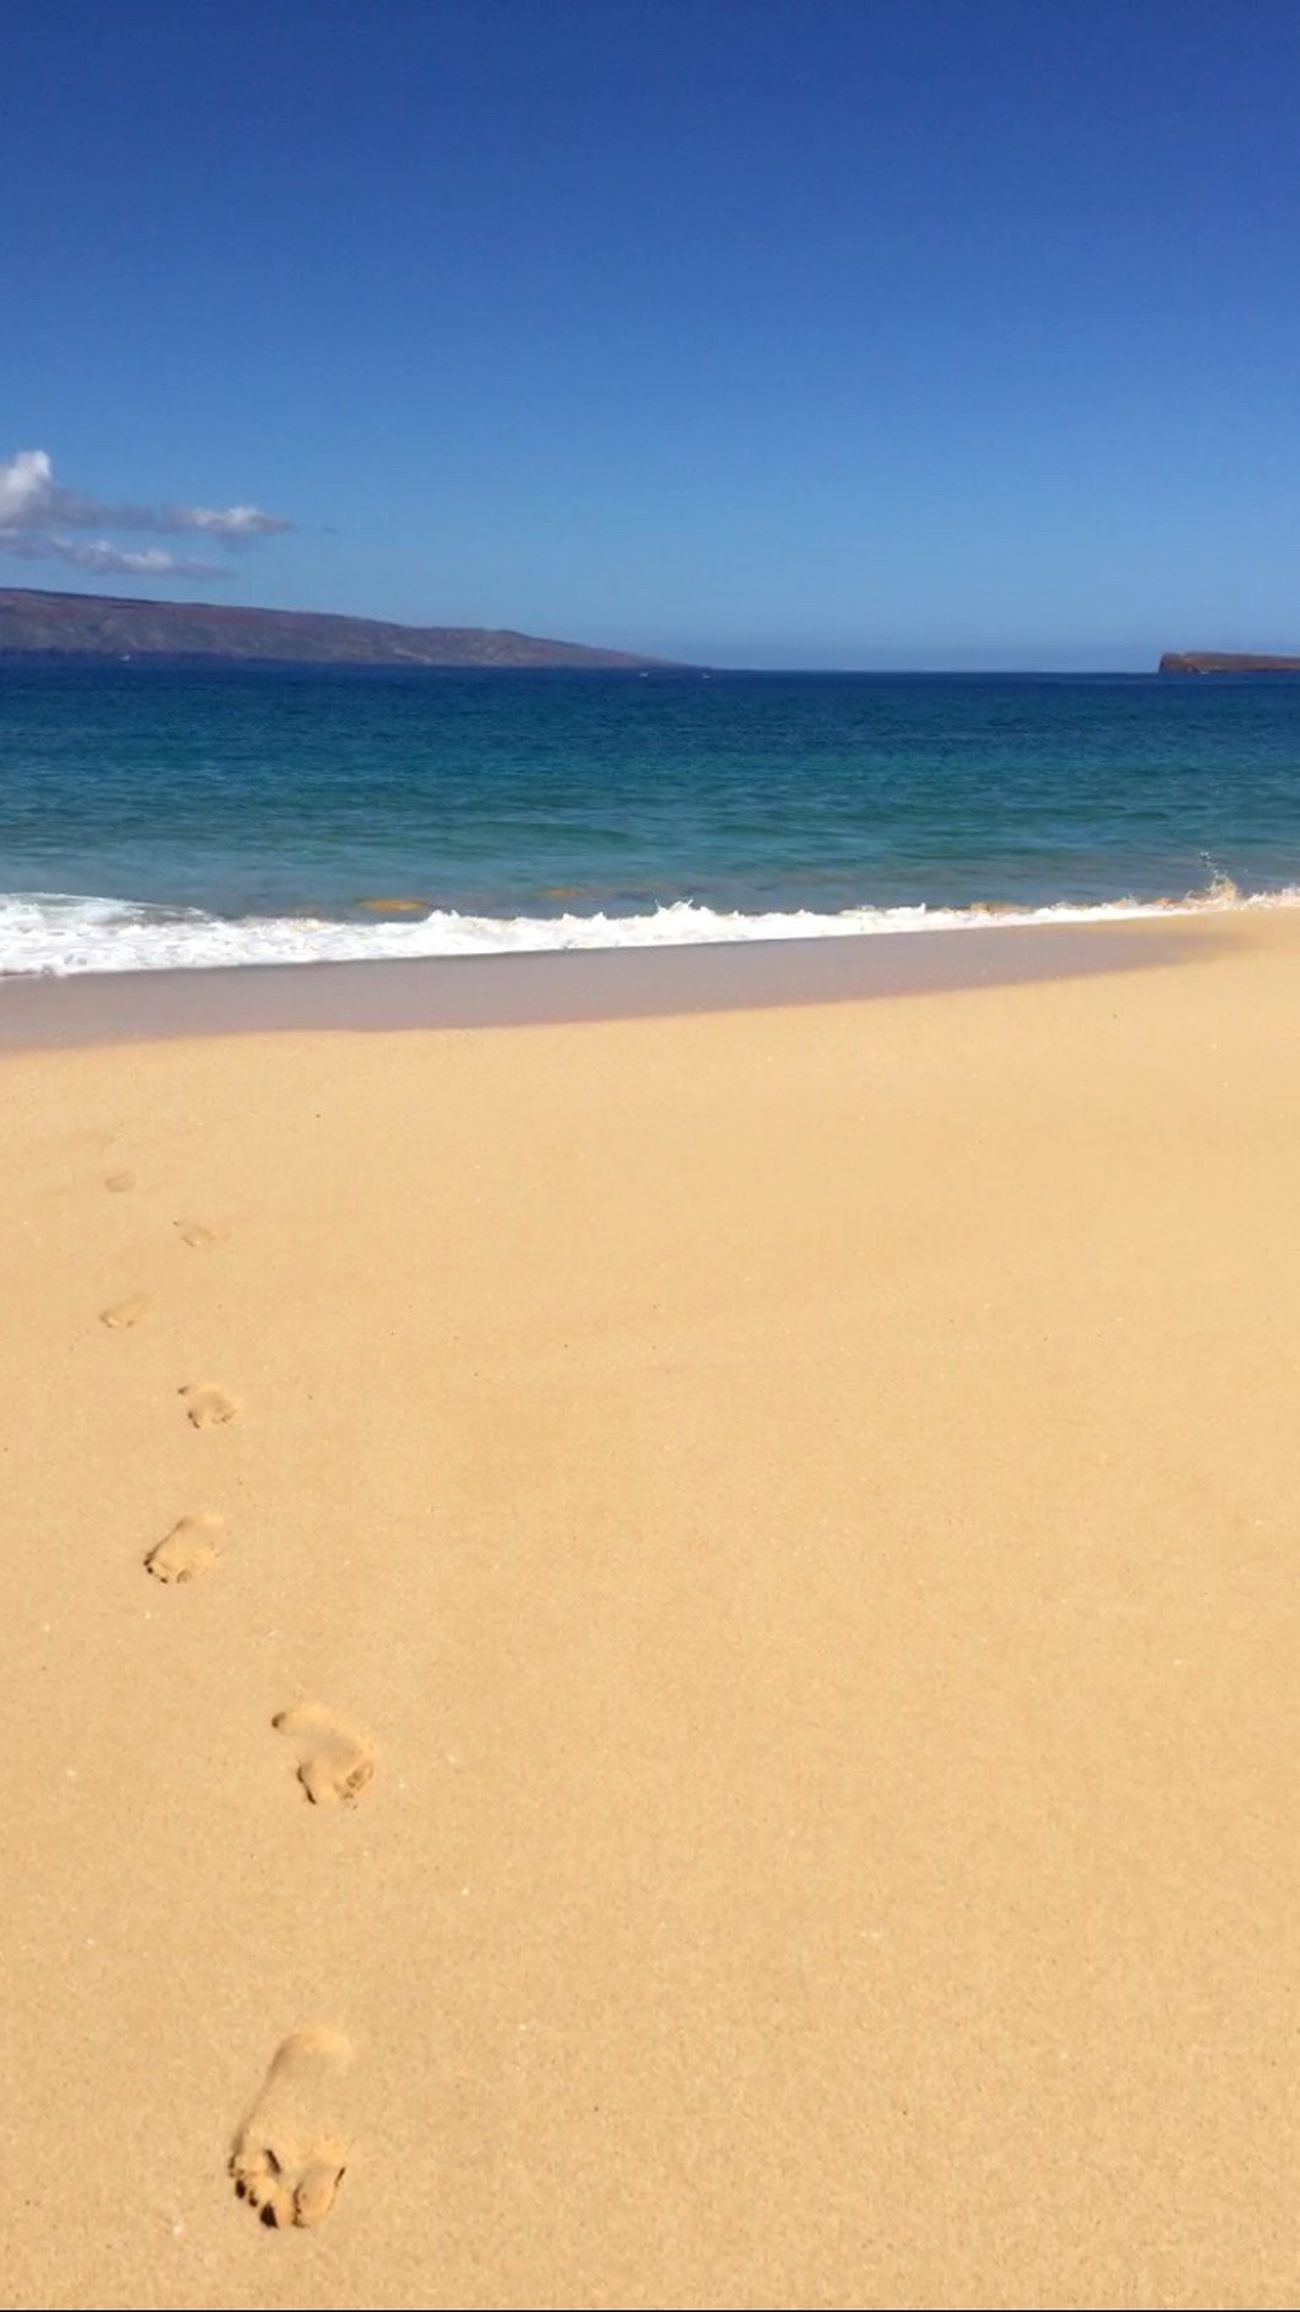 An unedited photo from paradise💫 Bigbeach Pure Maui Blue Magical Paradise Noedit Vibrant